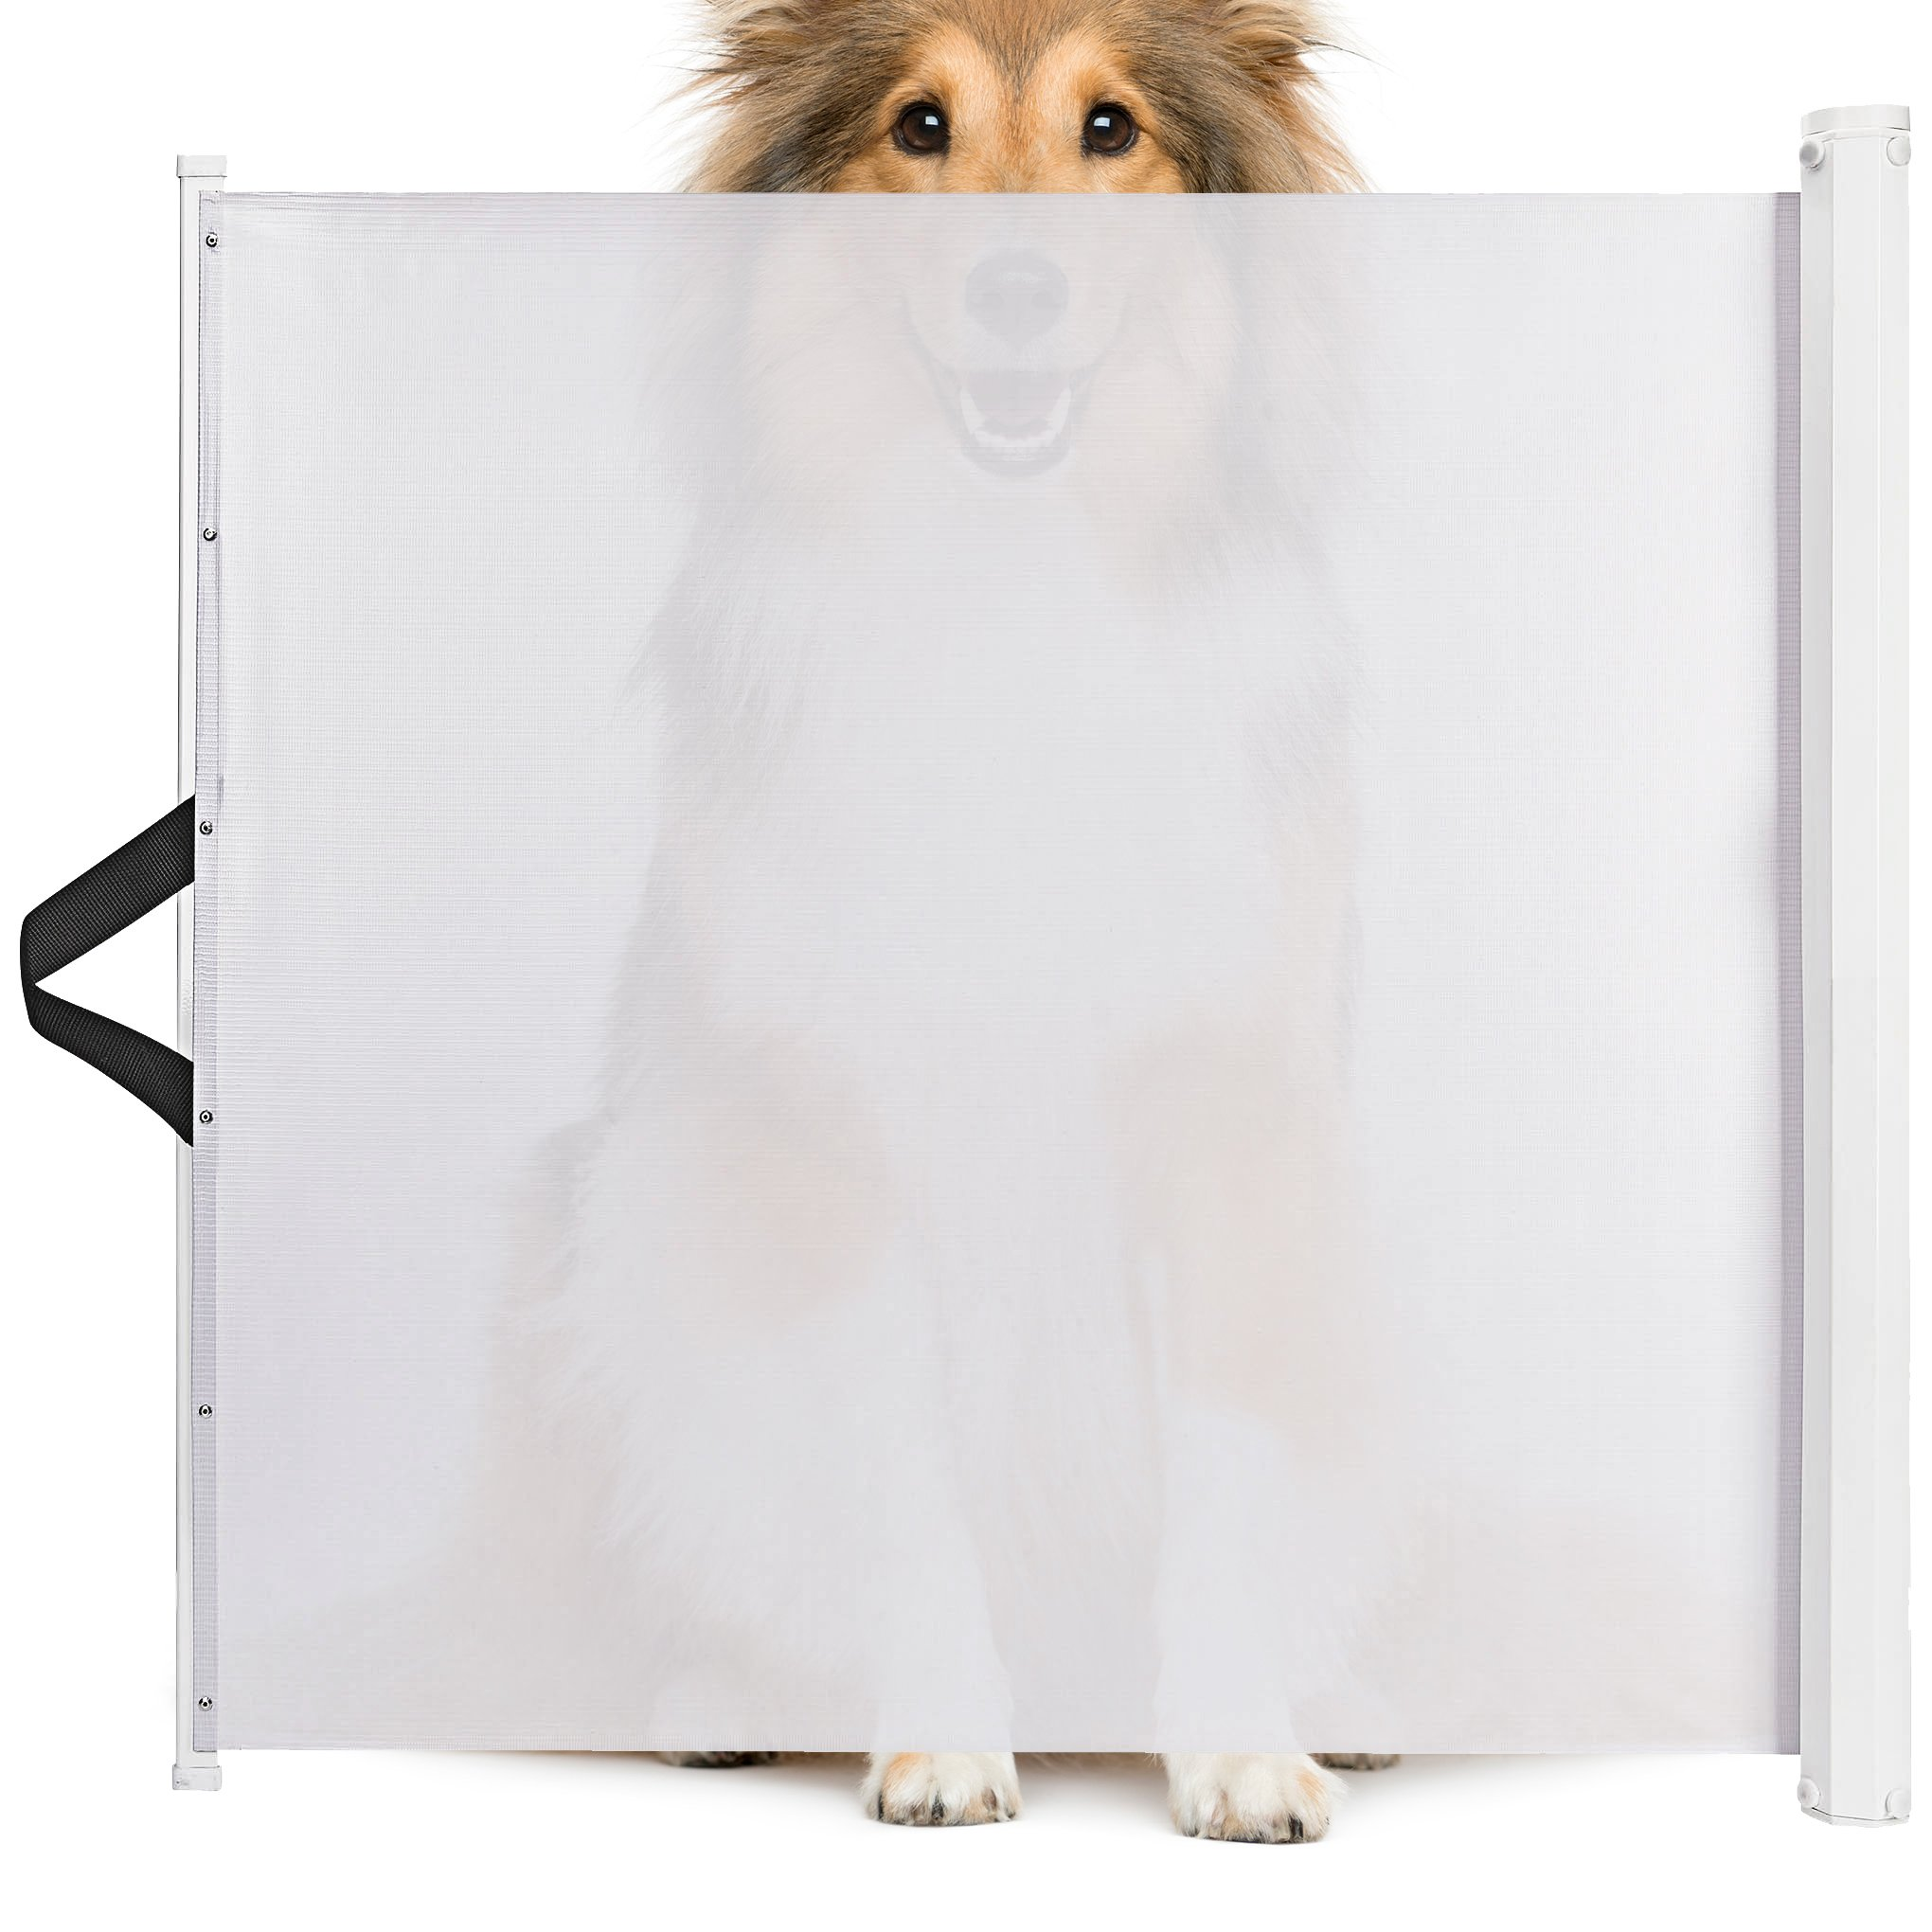 Animals Favorite Pet Retractable Safety Gate, Indoor and Outdoor Protection (Safety Gate)